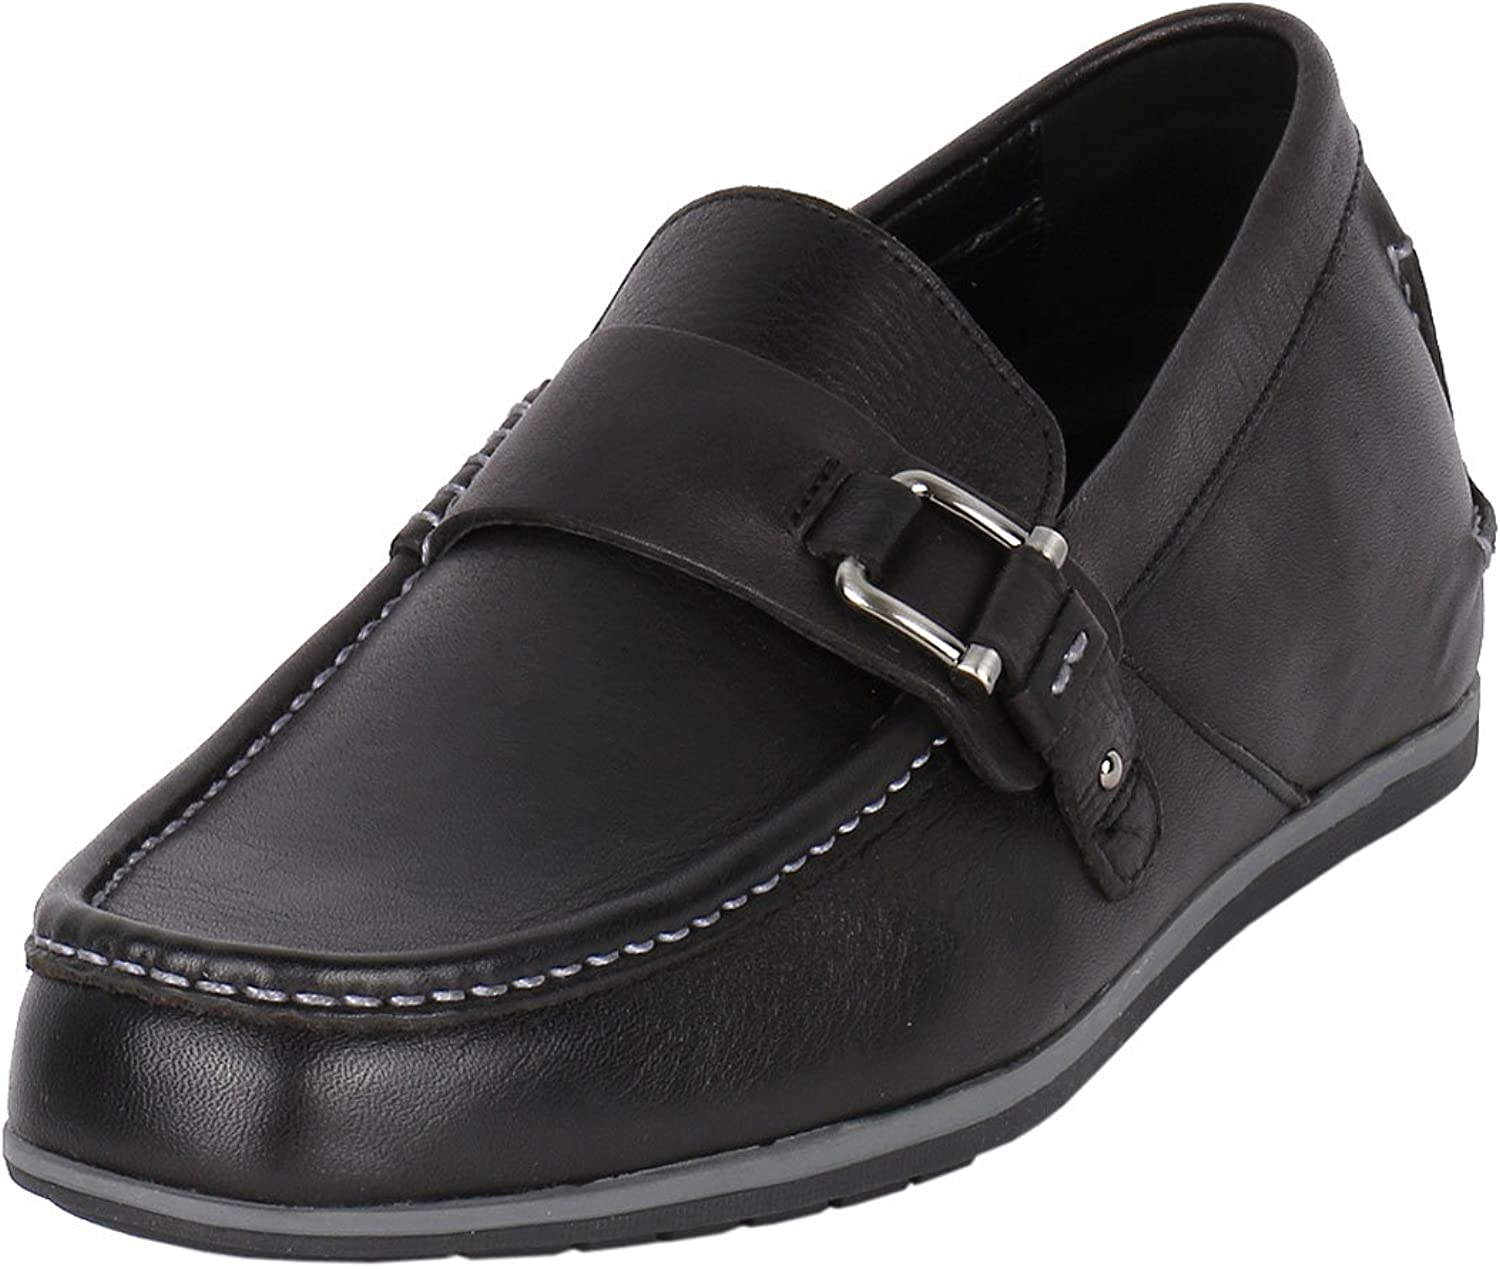 Exalt Men Height Sharp In Loafer Style 2  Tall shoes By Jota, JWC507BL